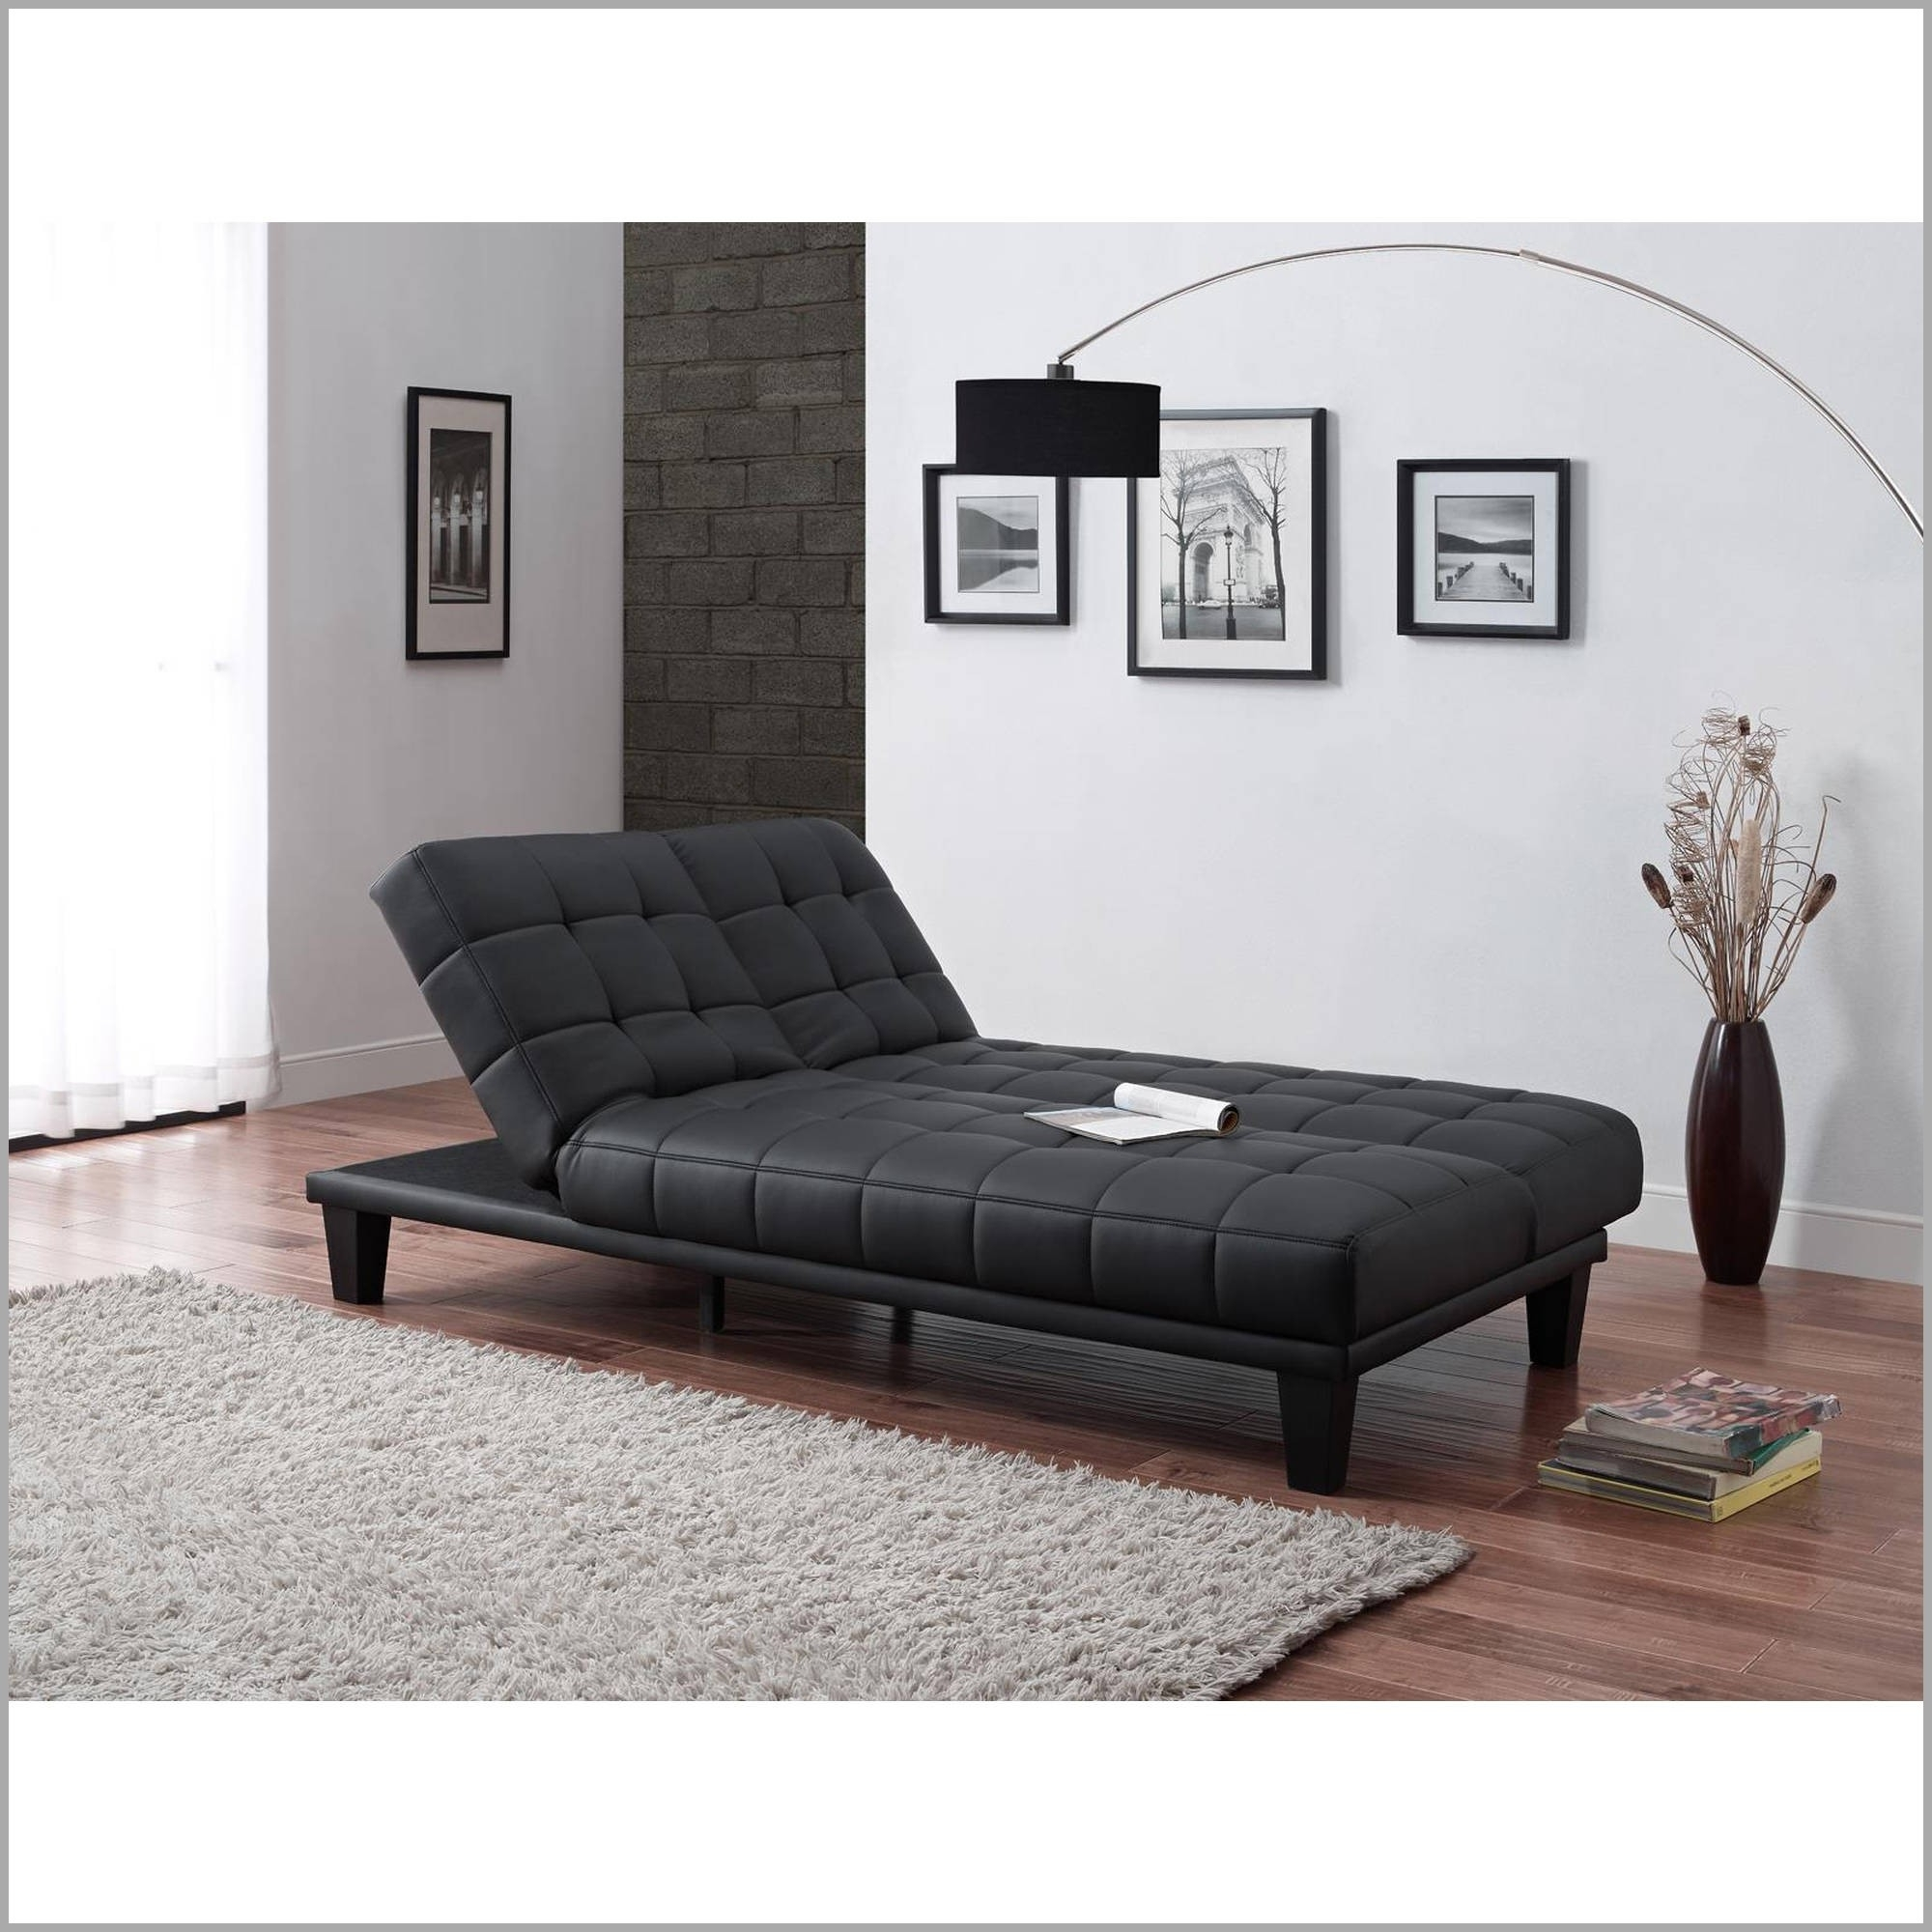 Awesome Futon Lounger Accessories 53018 – Futon Ideas Pertaining To Most Current Futons With Chaise Lounge (View 5 of 15)